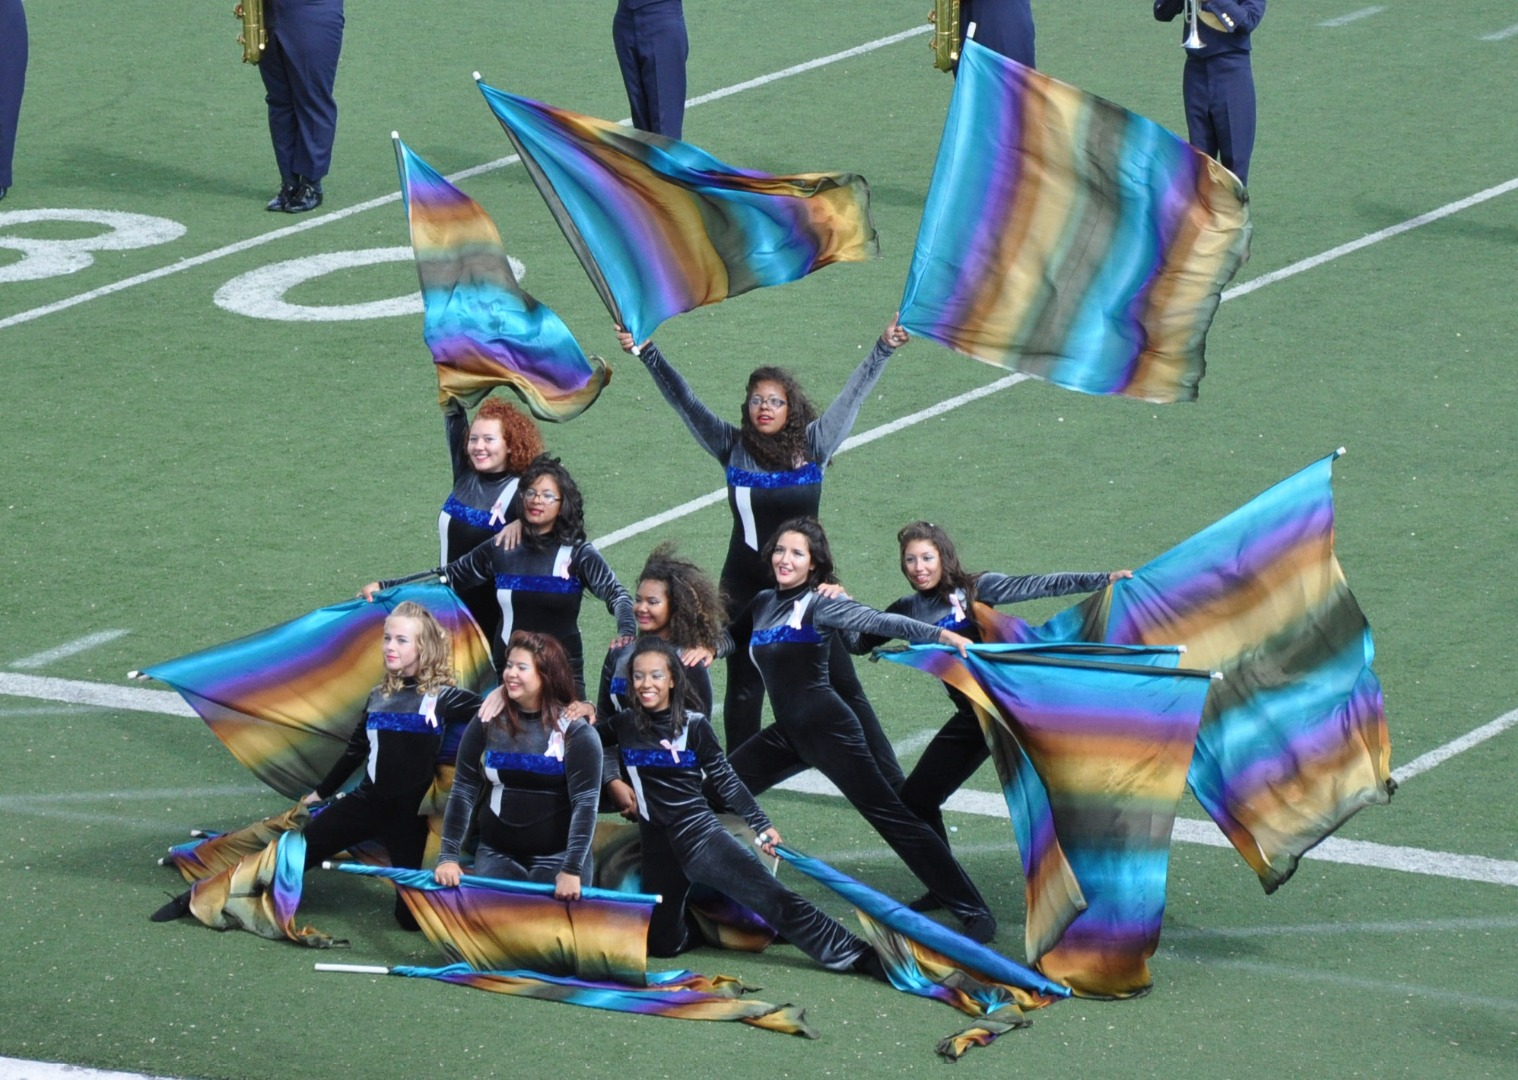 Highland dance team performs on football field